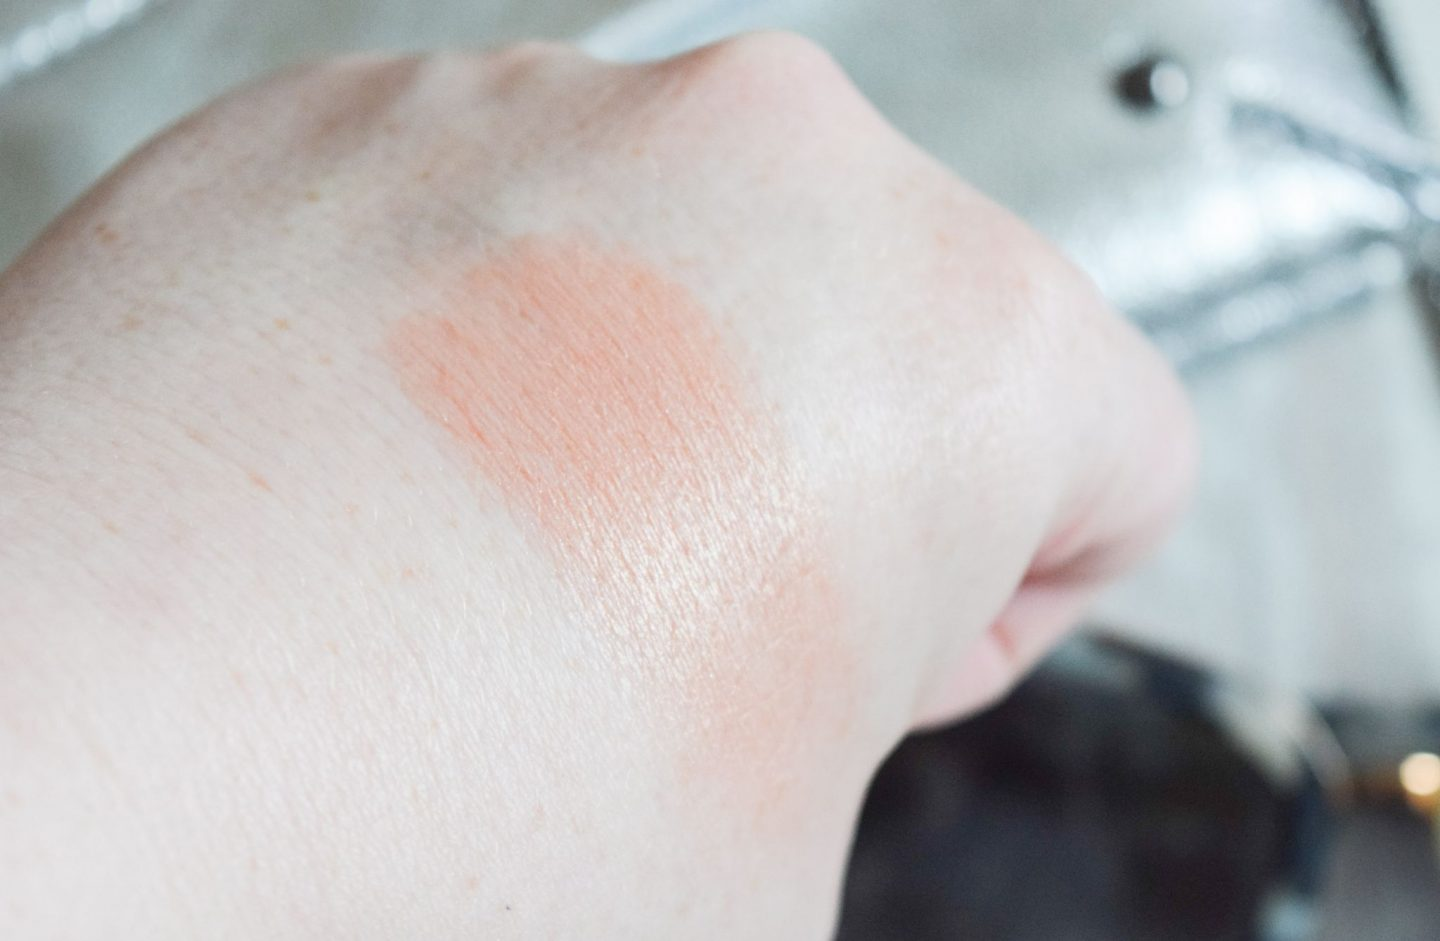 Charlotte Tilbury Cheek to Chic Blusher in Pillow Talk swatch